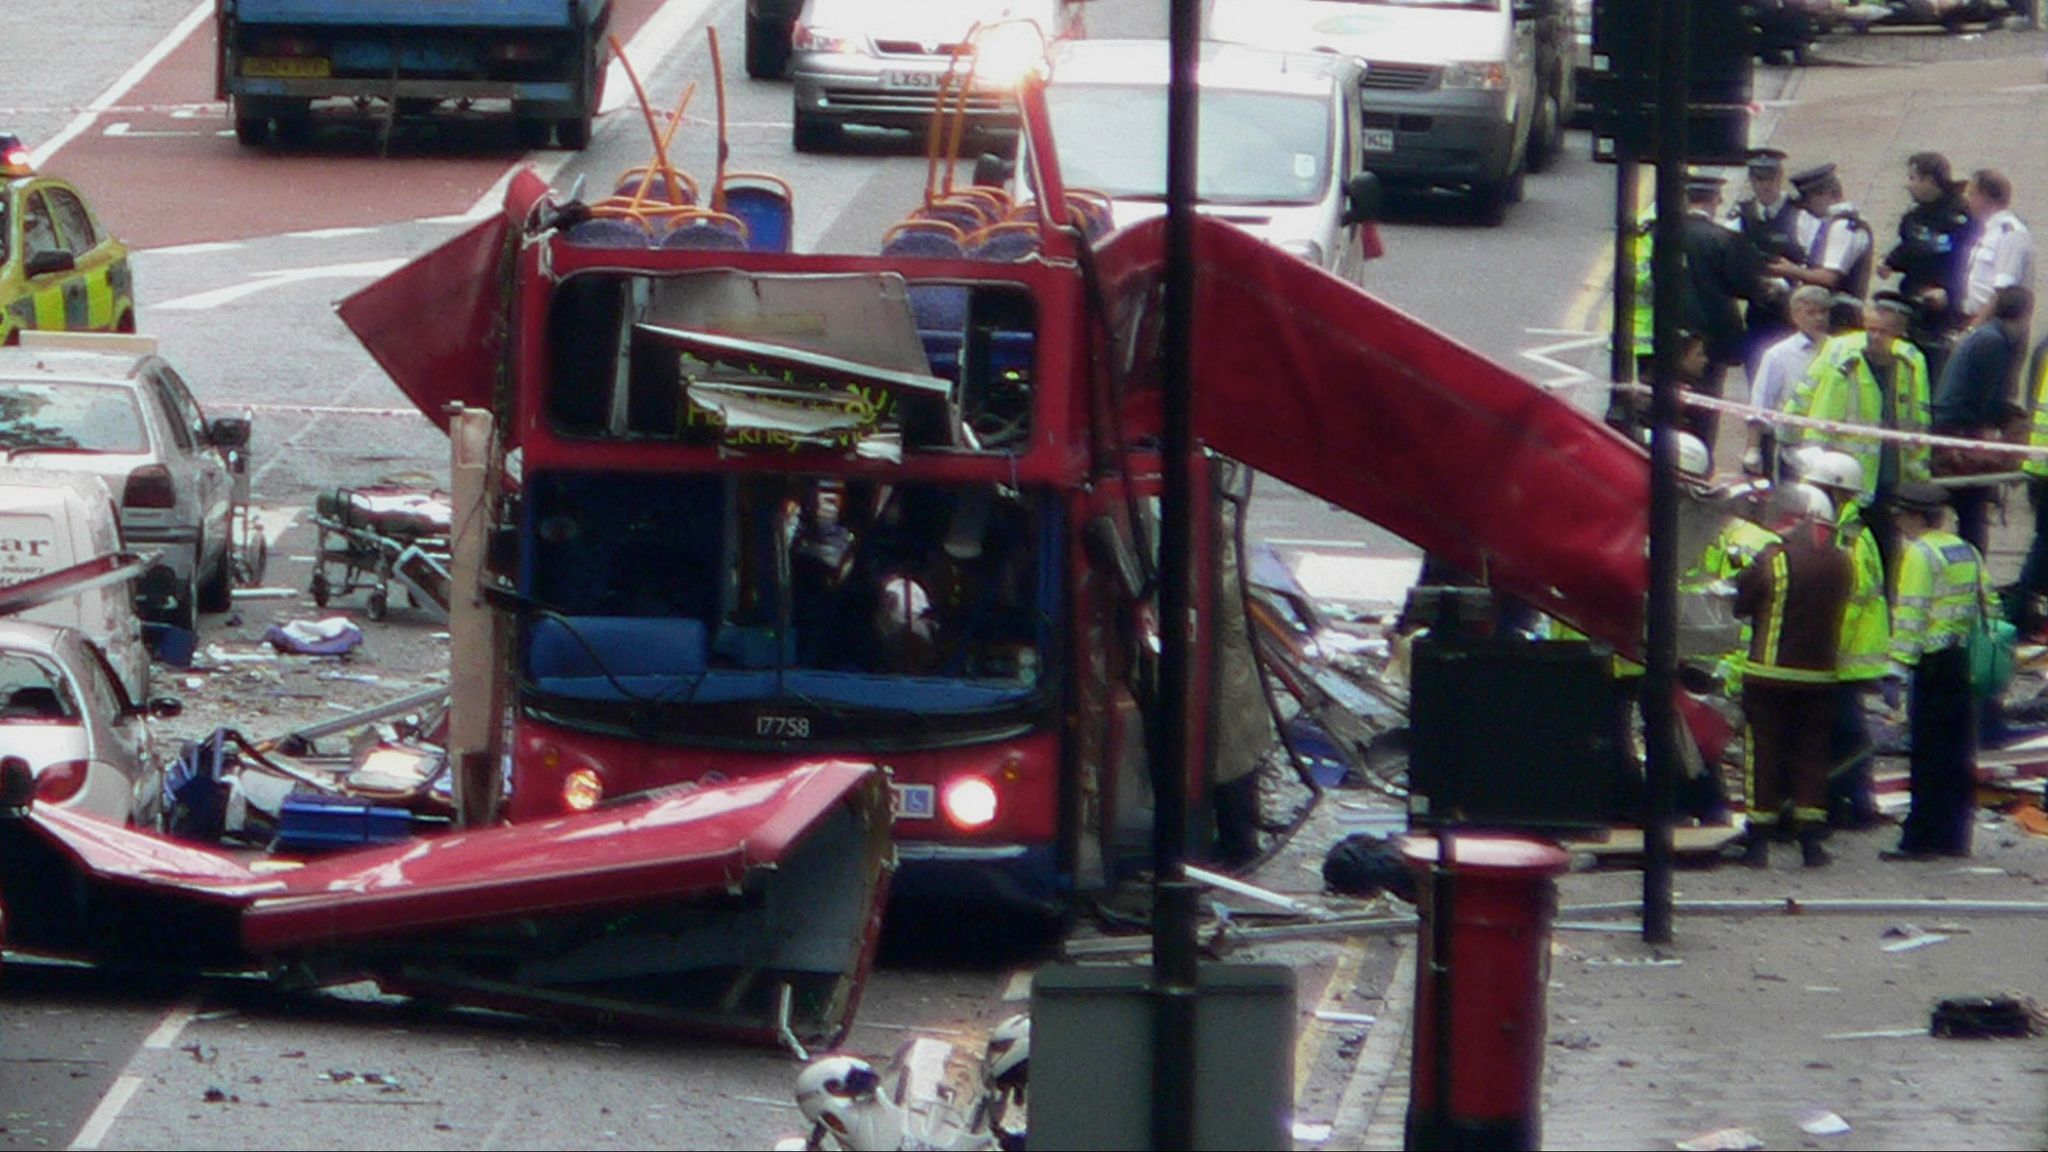 Several bombings rocked London's public transportation systems, damaging buses and subways, killing dozens amd injuring hundreds on July 7, 2005, in London, England.